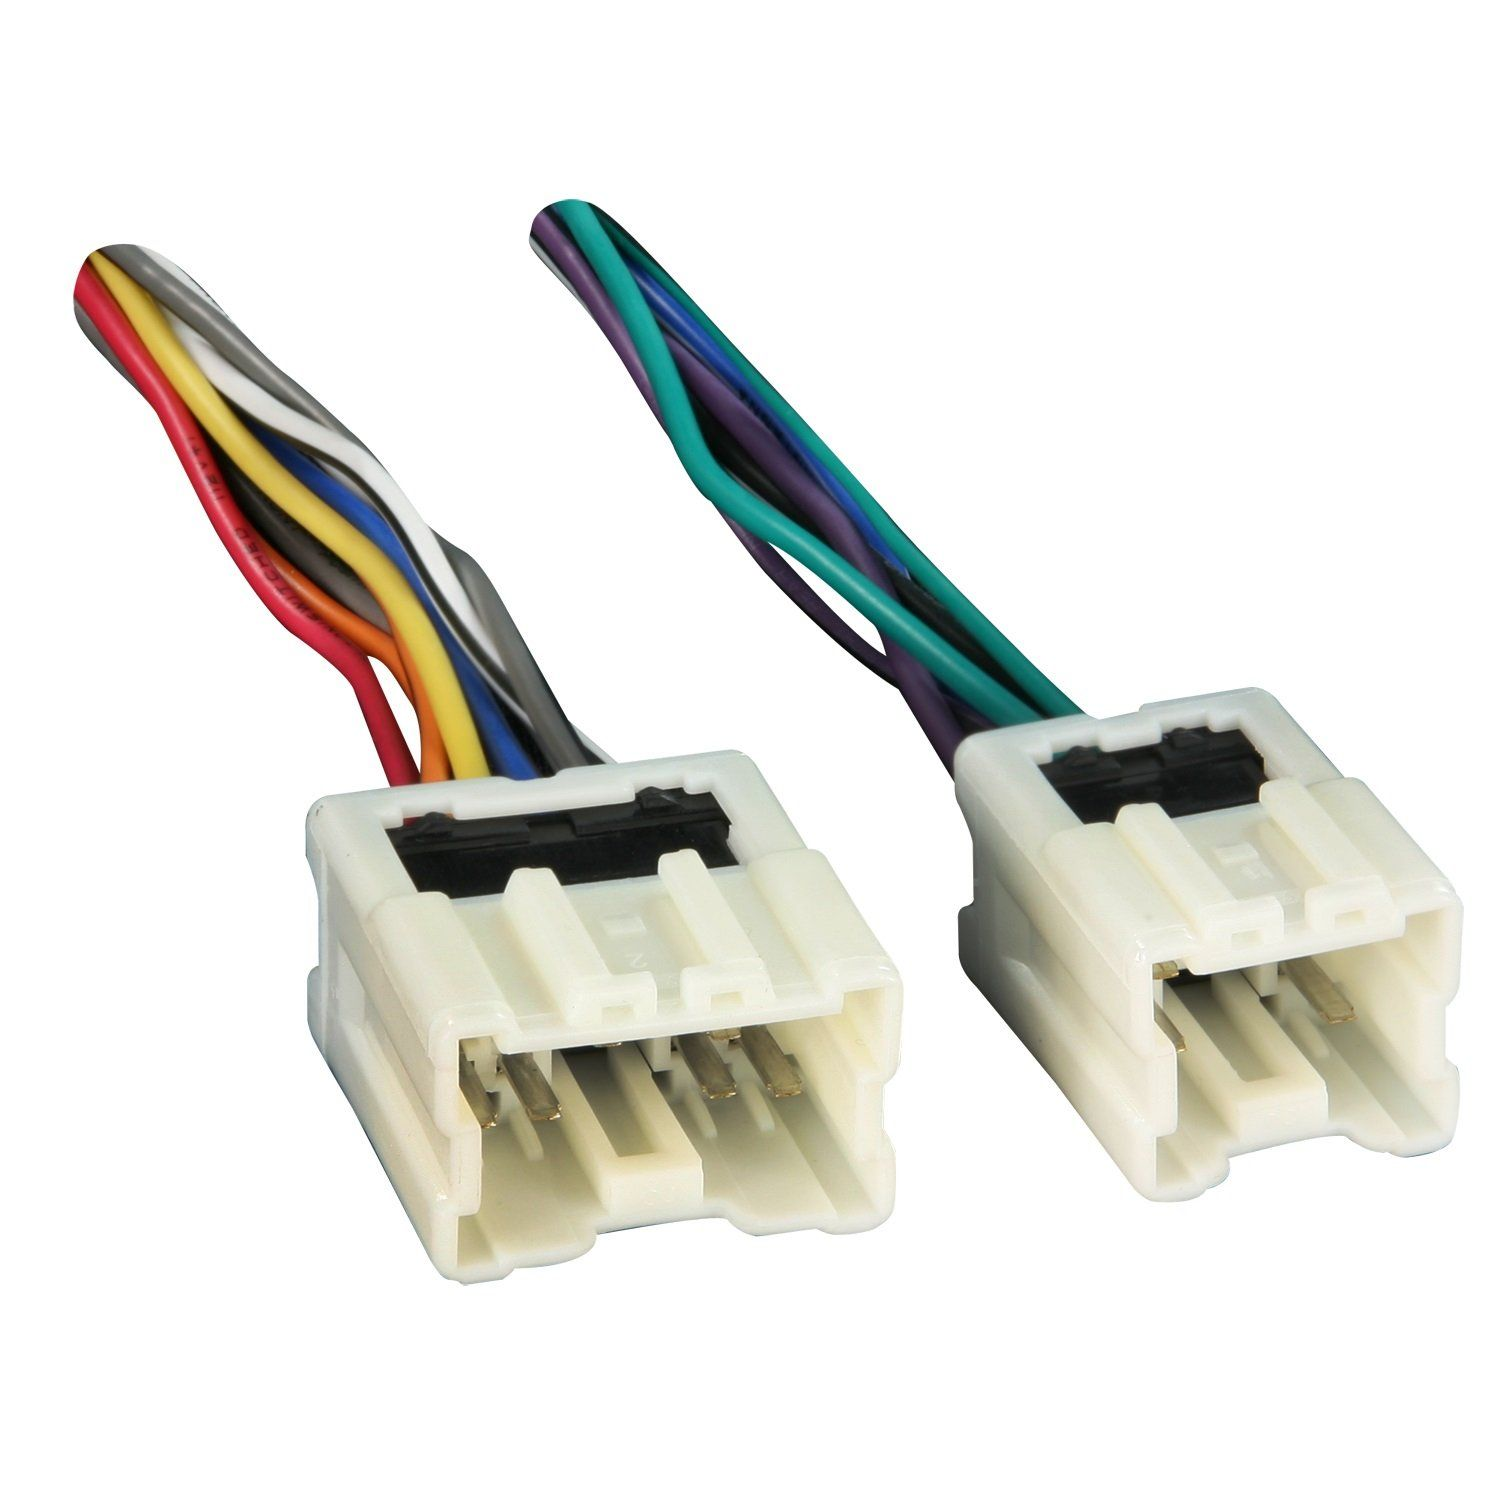 Metra 70 7550 Wiring Harness For Select 1990 2005 Nissan Infiniti Vehicles Car Harness Nissan R Infiniti Vehicles